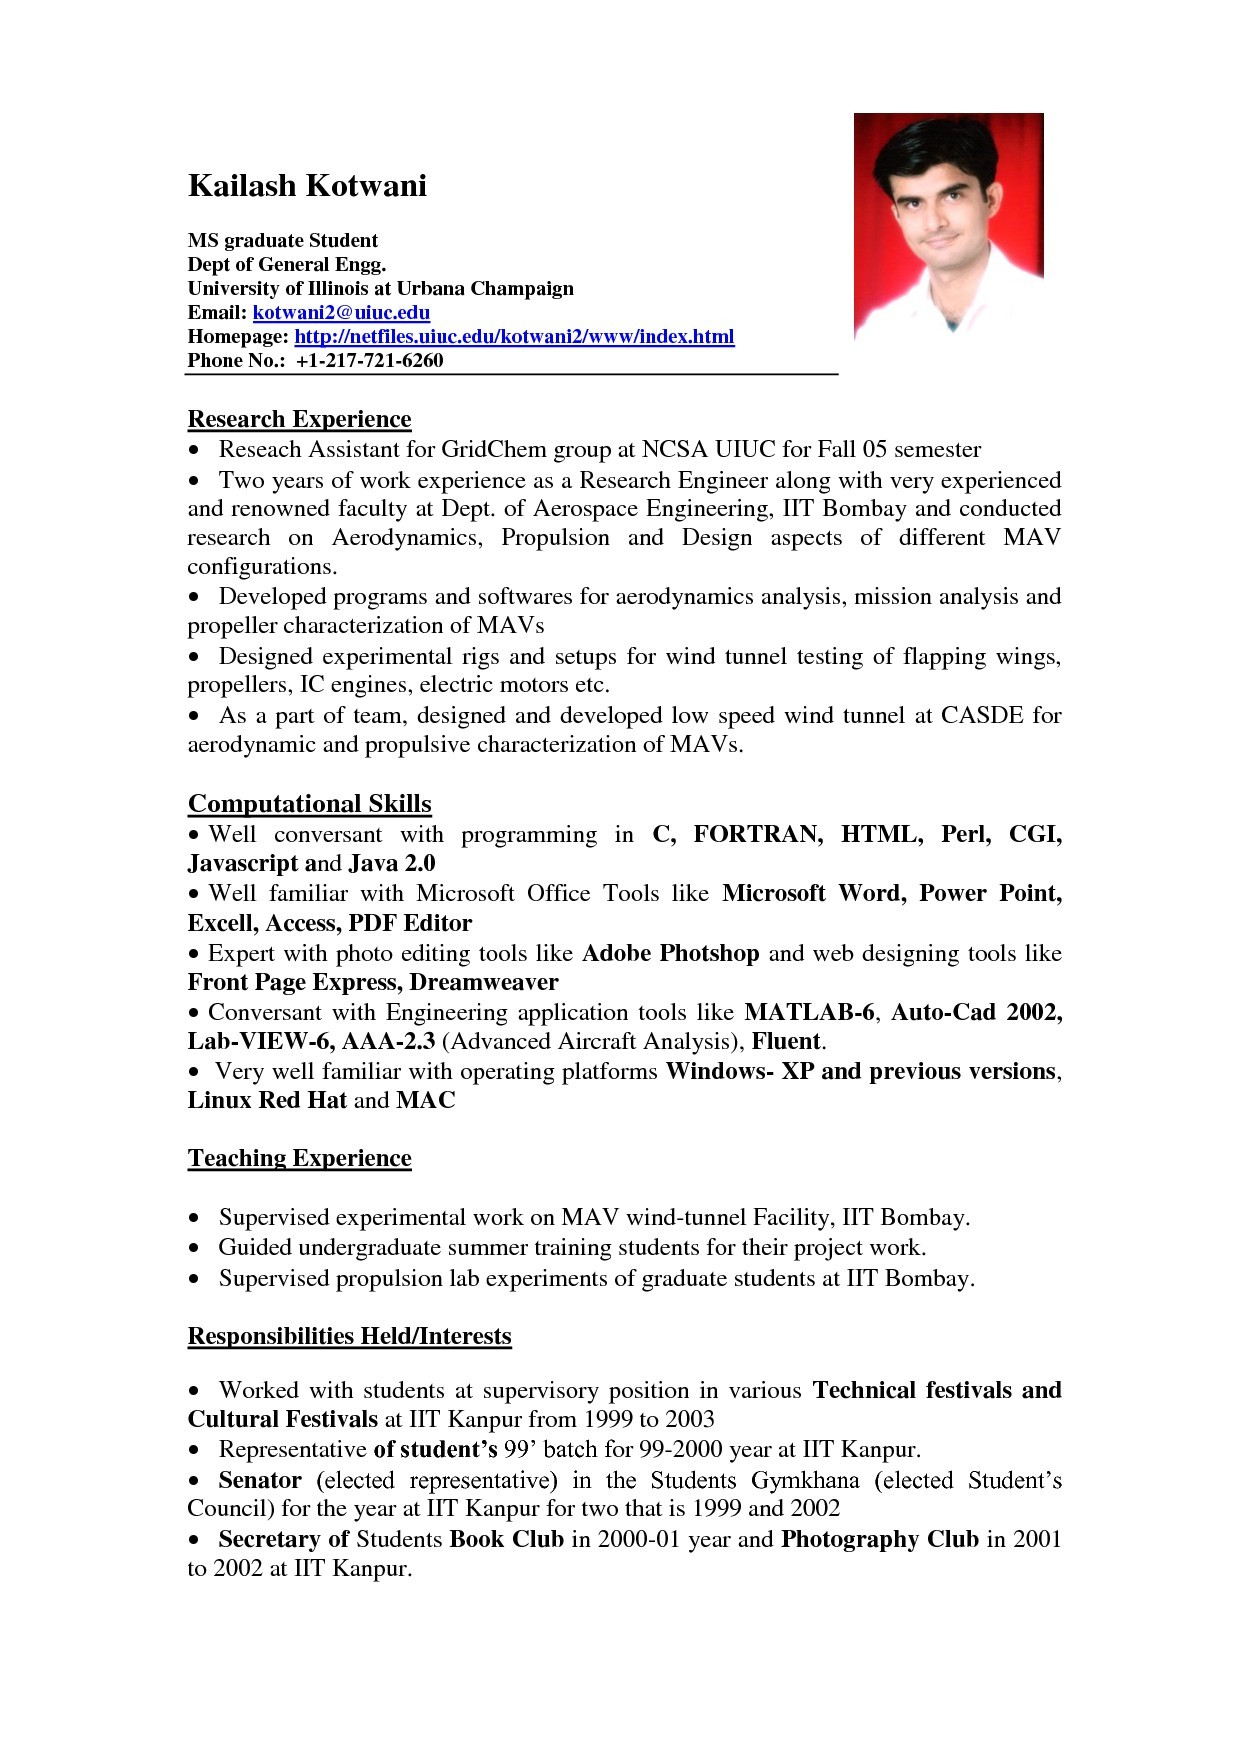 uiuc resume template example-Luxury Resume Examples Pdf Best Resume Pdf 0d Resumes for Teens 16-q